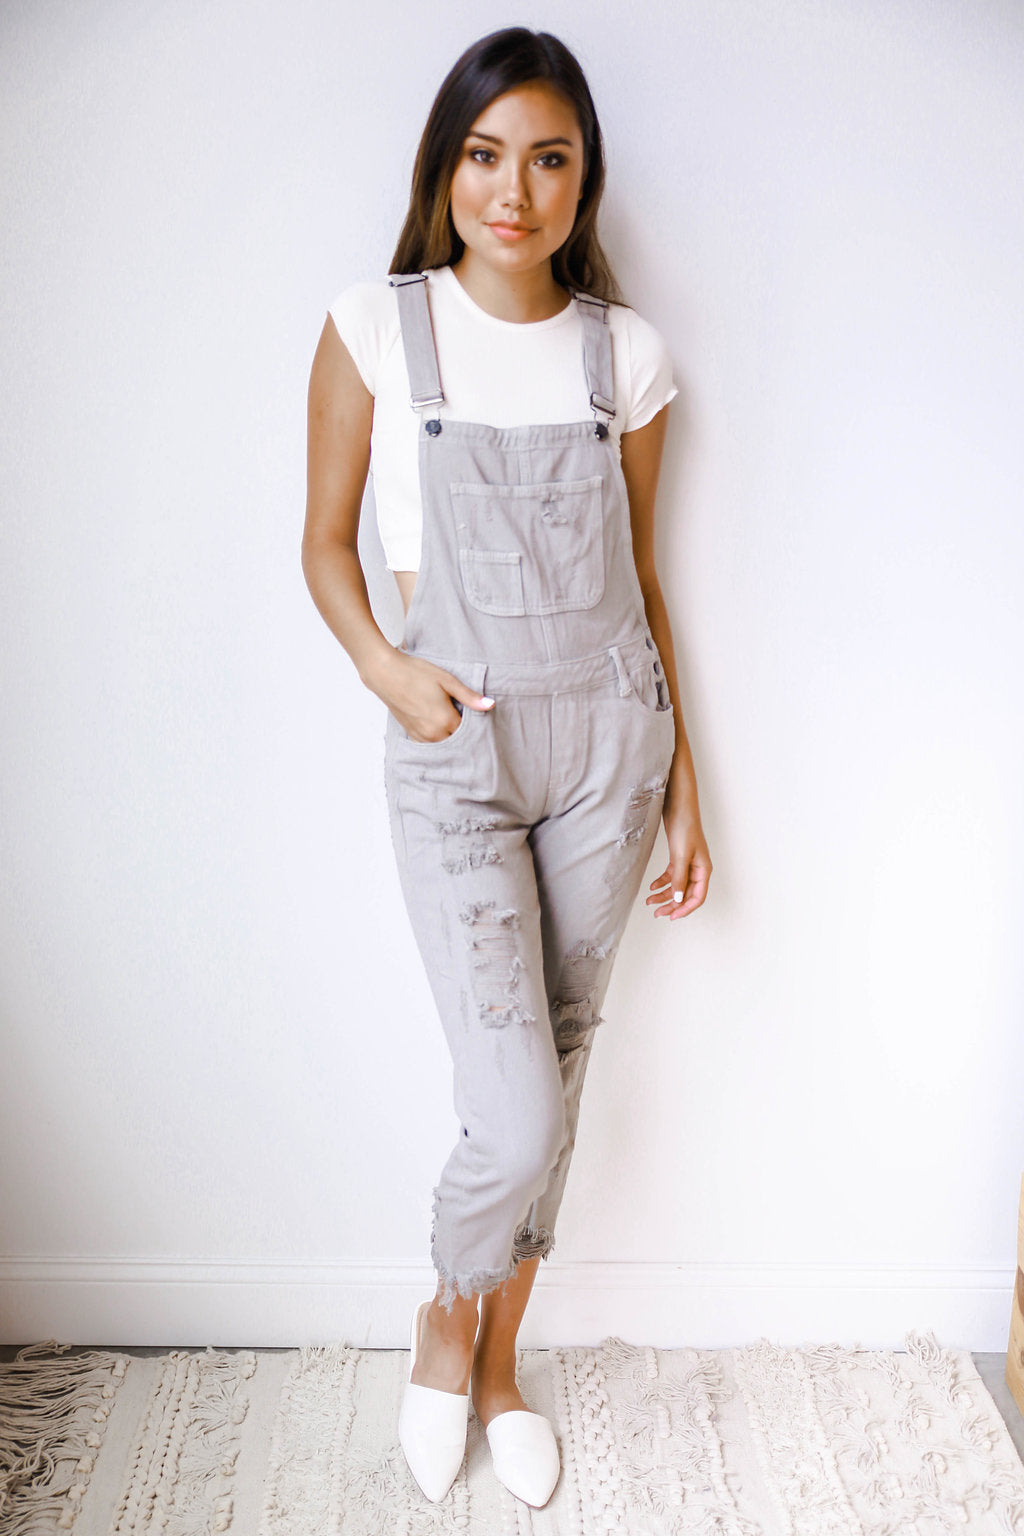 overall, i love you